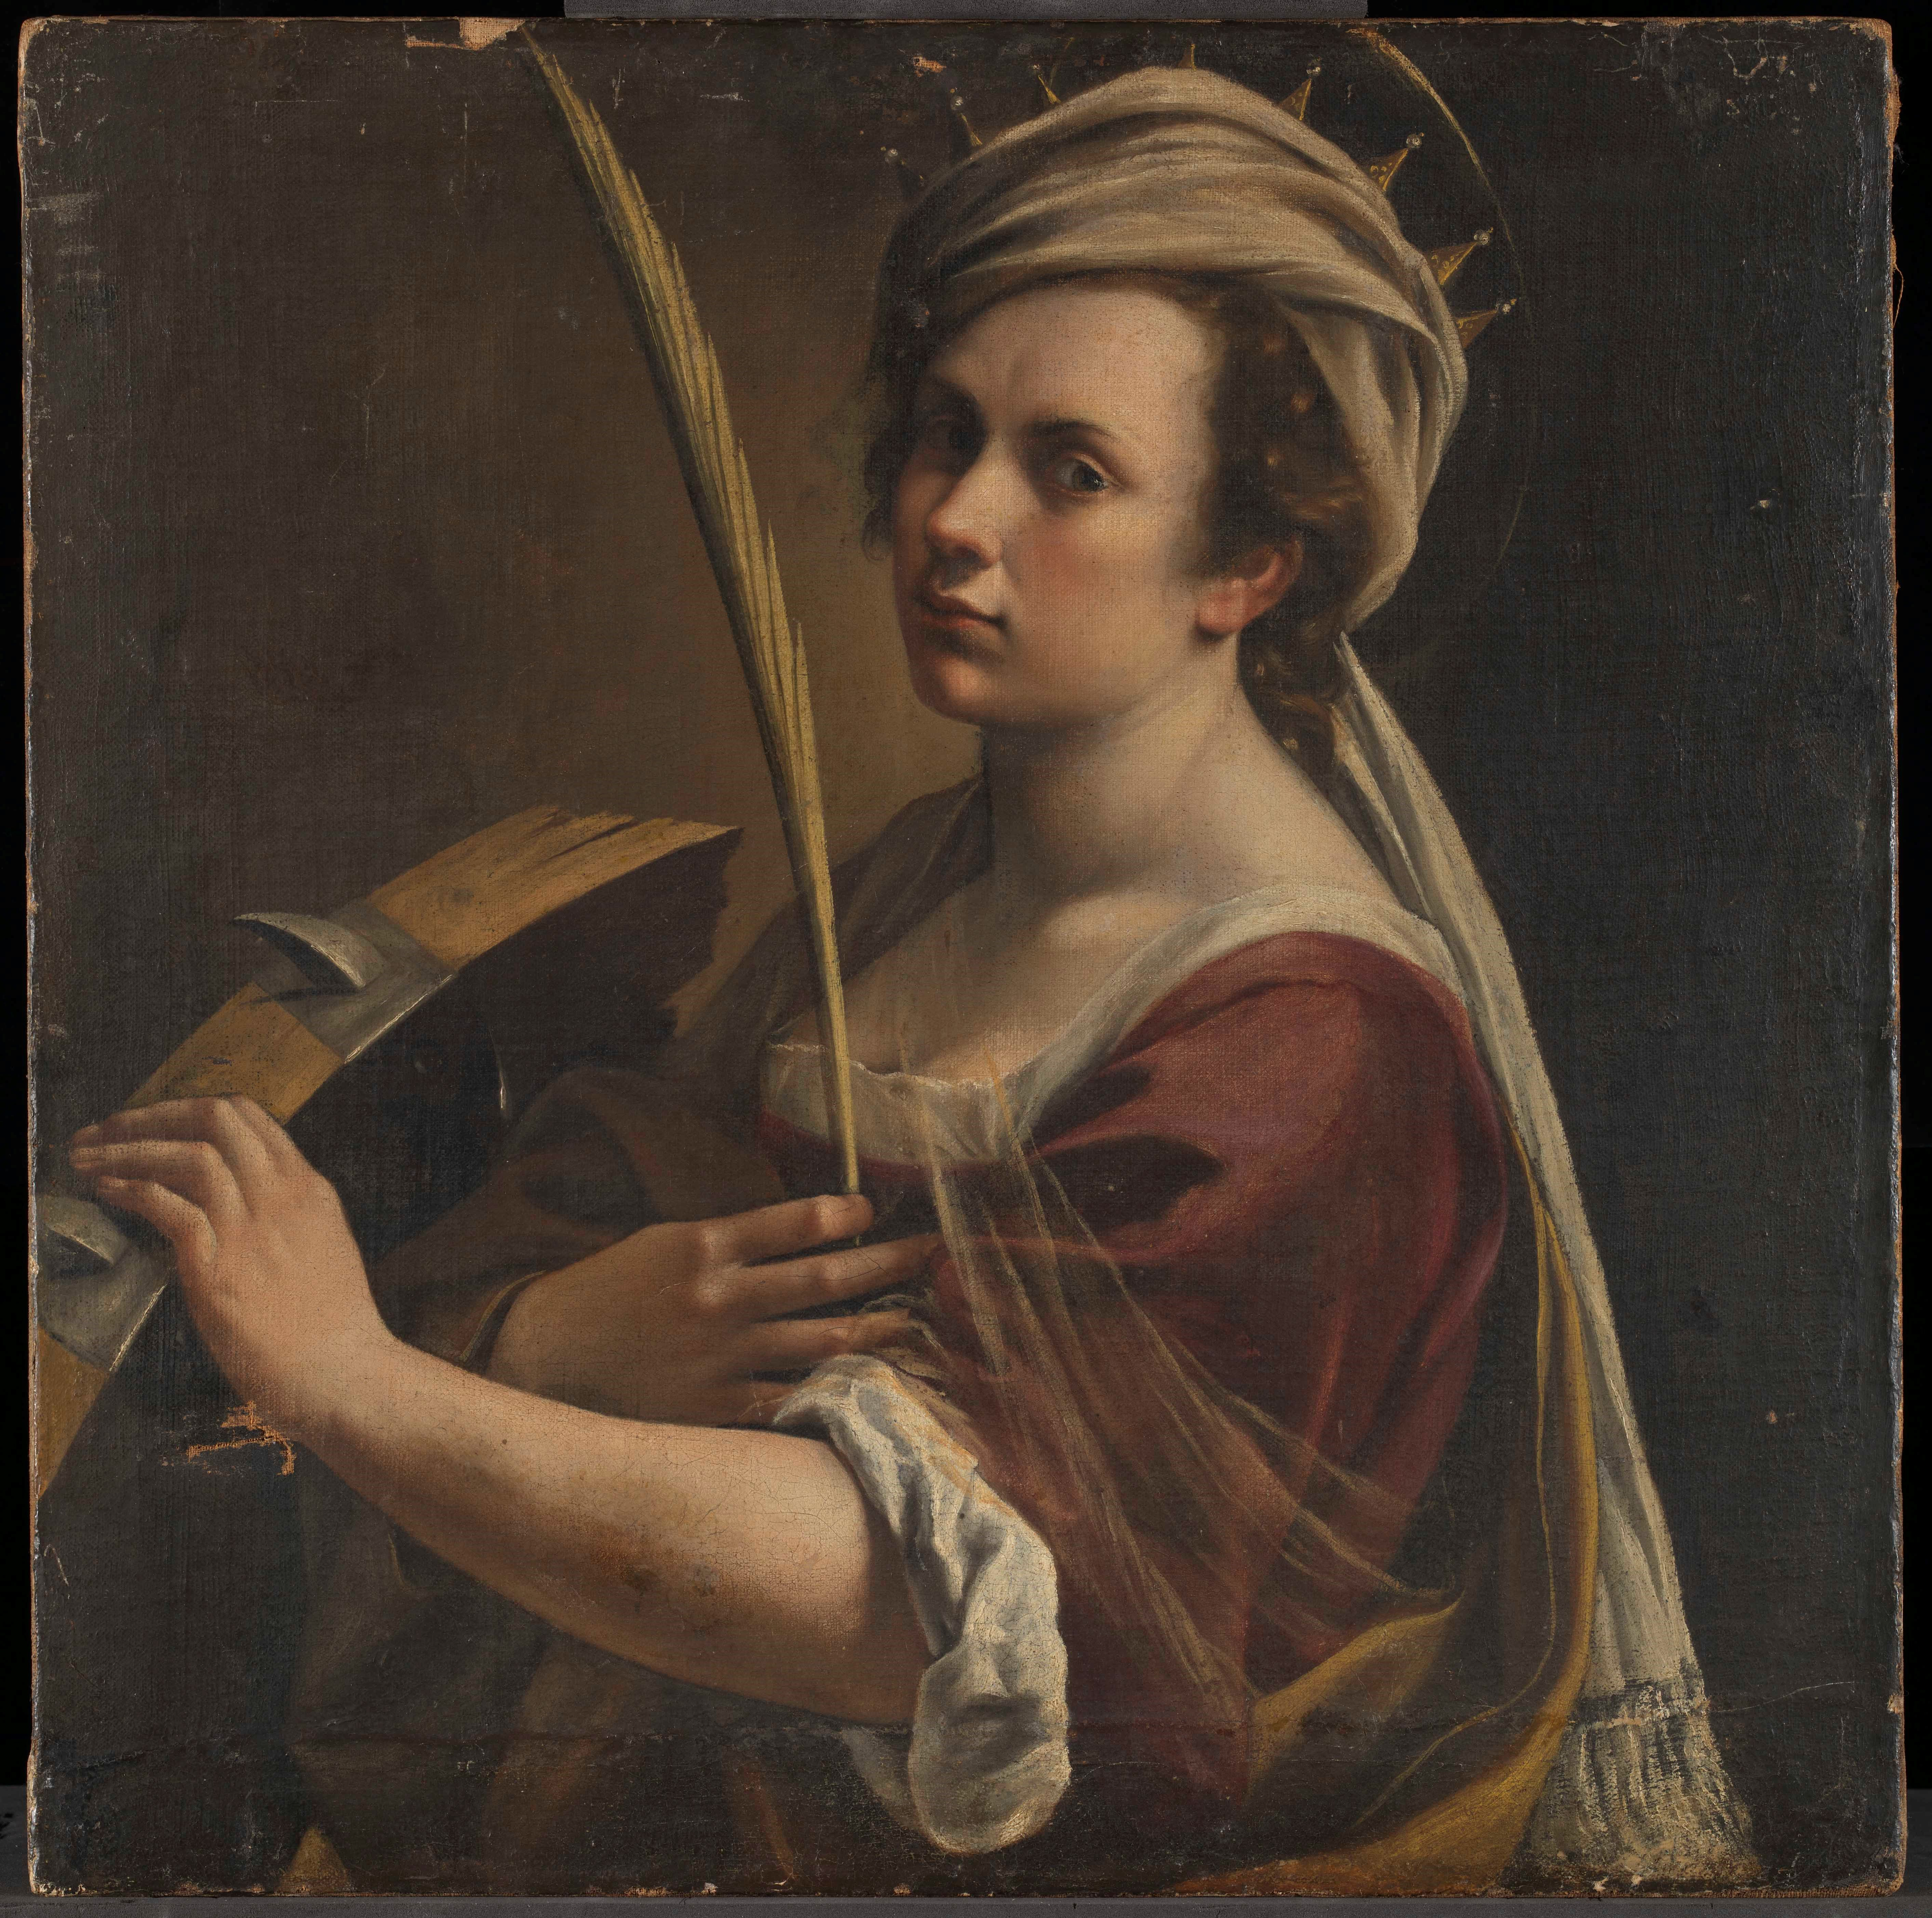 the trials of artemisia gentileschi a rape as history essay A self-portrait of remarkable strength  sarah harper armstrong state university artemisia gentileschi's life in renaissance and post-renaissance europe was embattled yet grand.